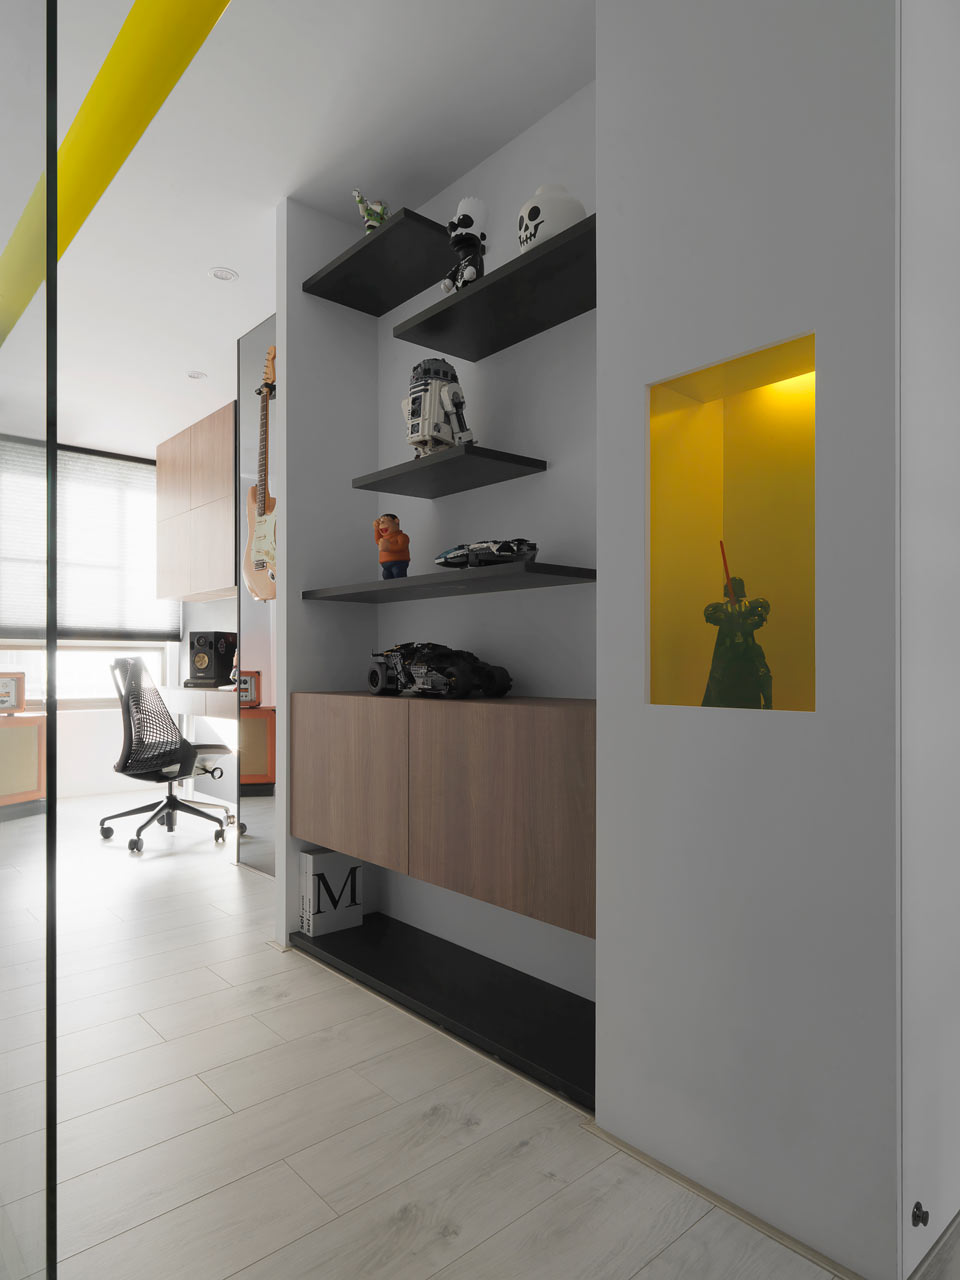 taichung h residence11 Modern Apartment with Bright Yellow Accents